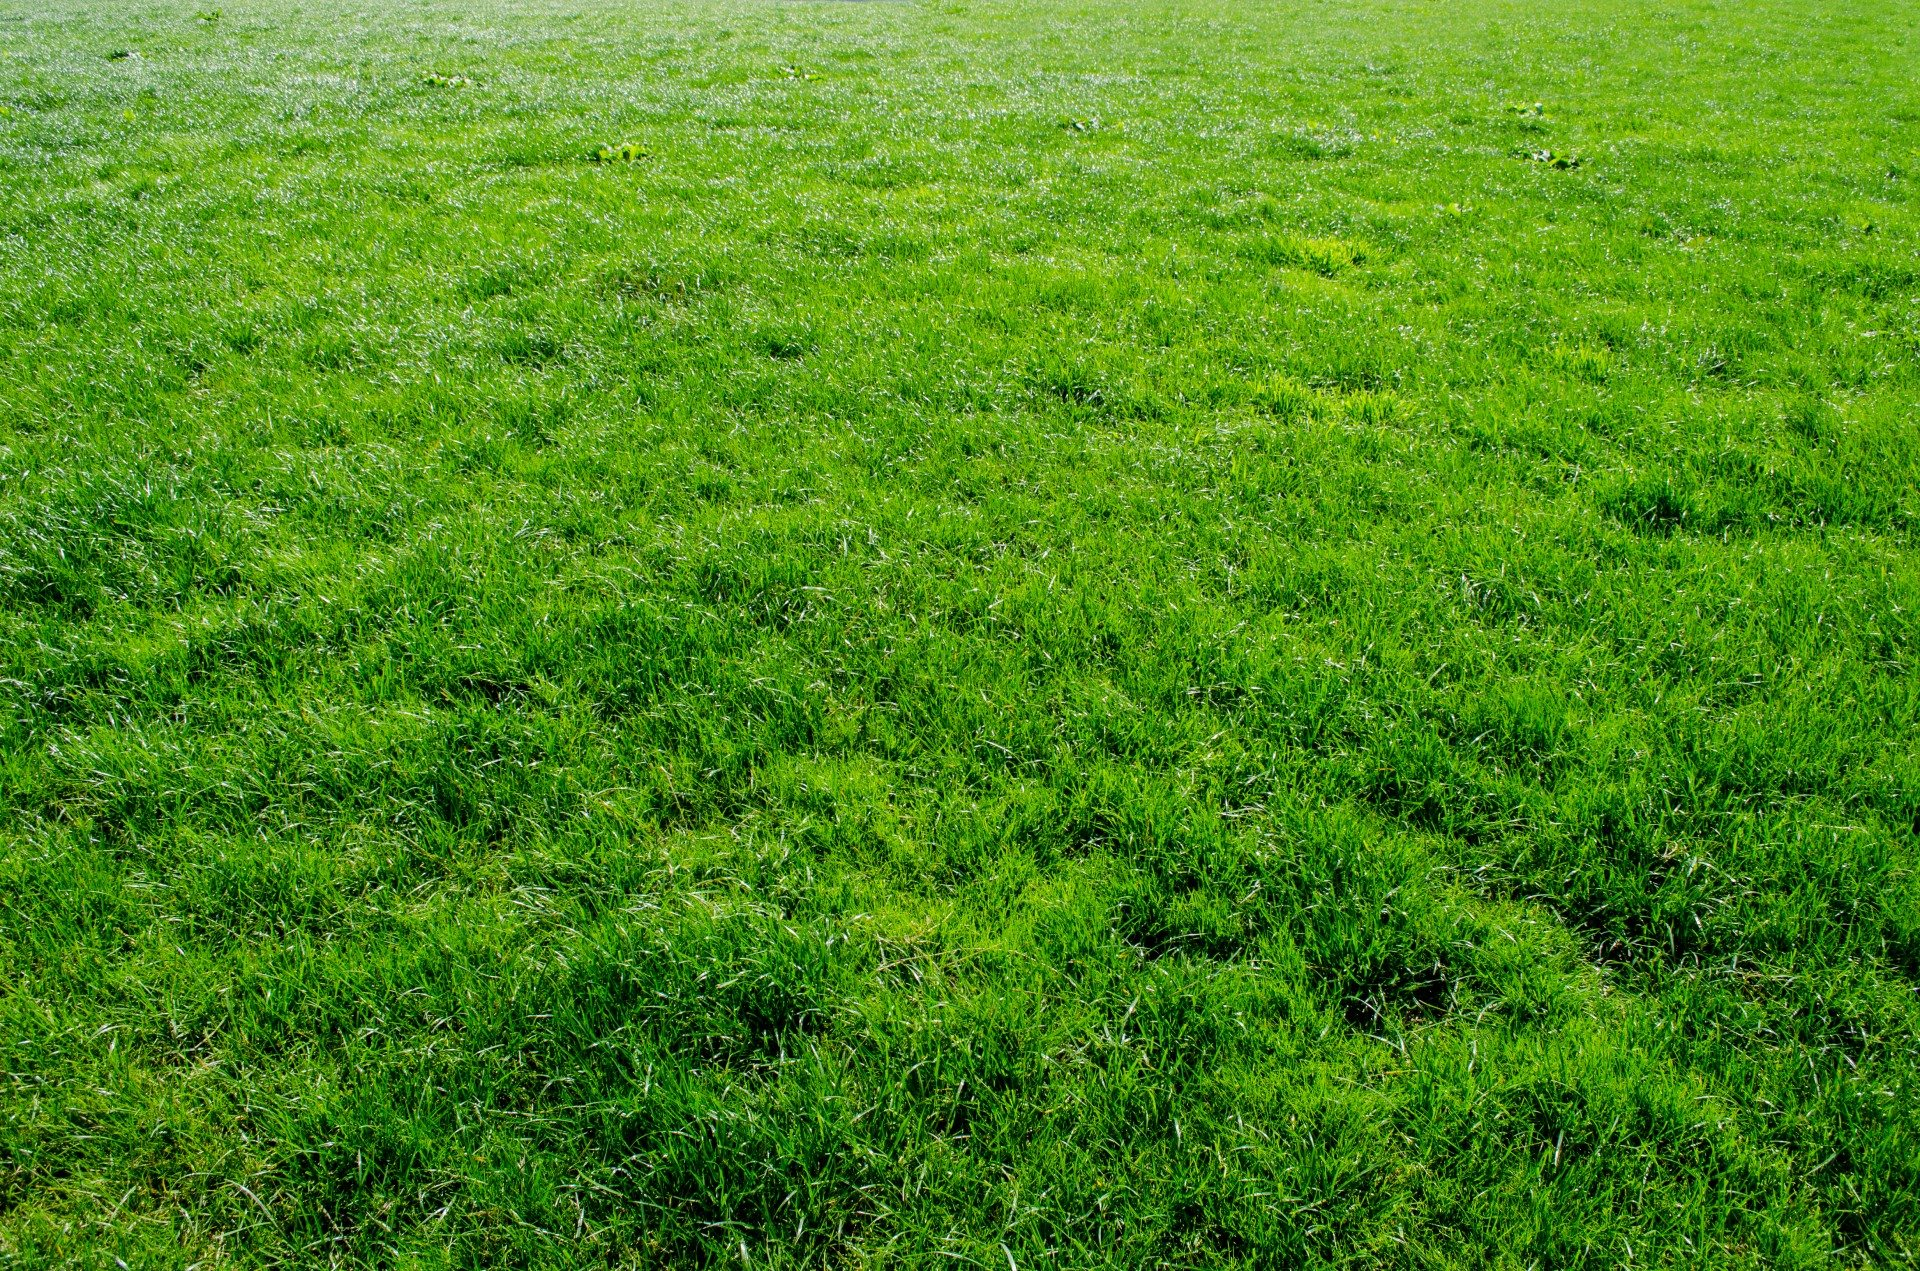 how to make grass green without chemicals